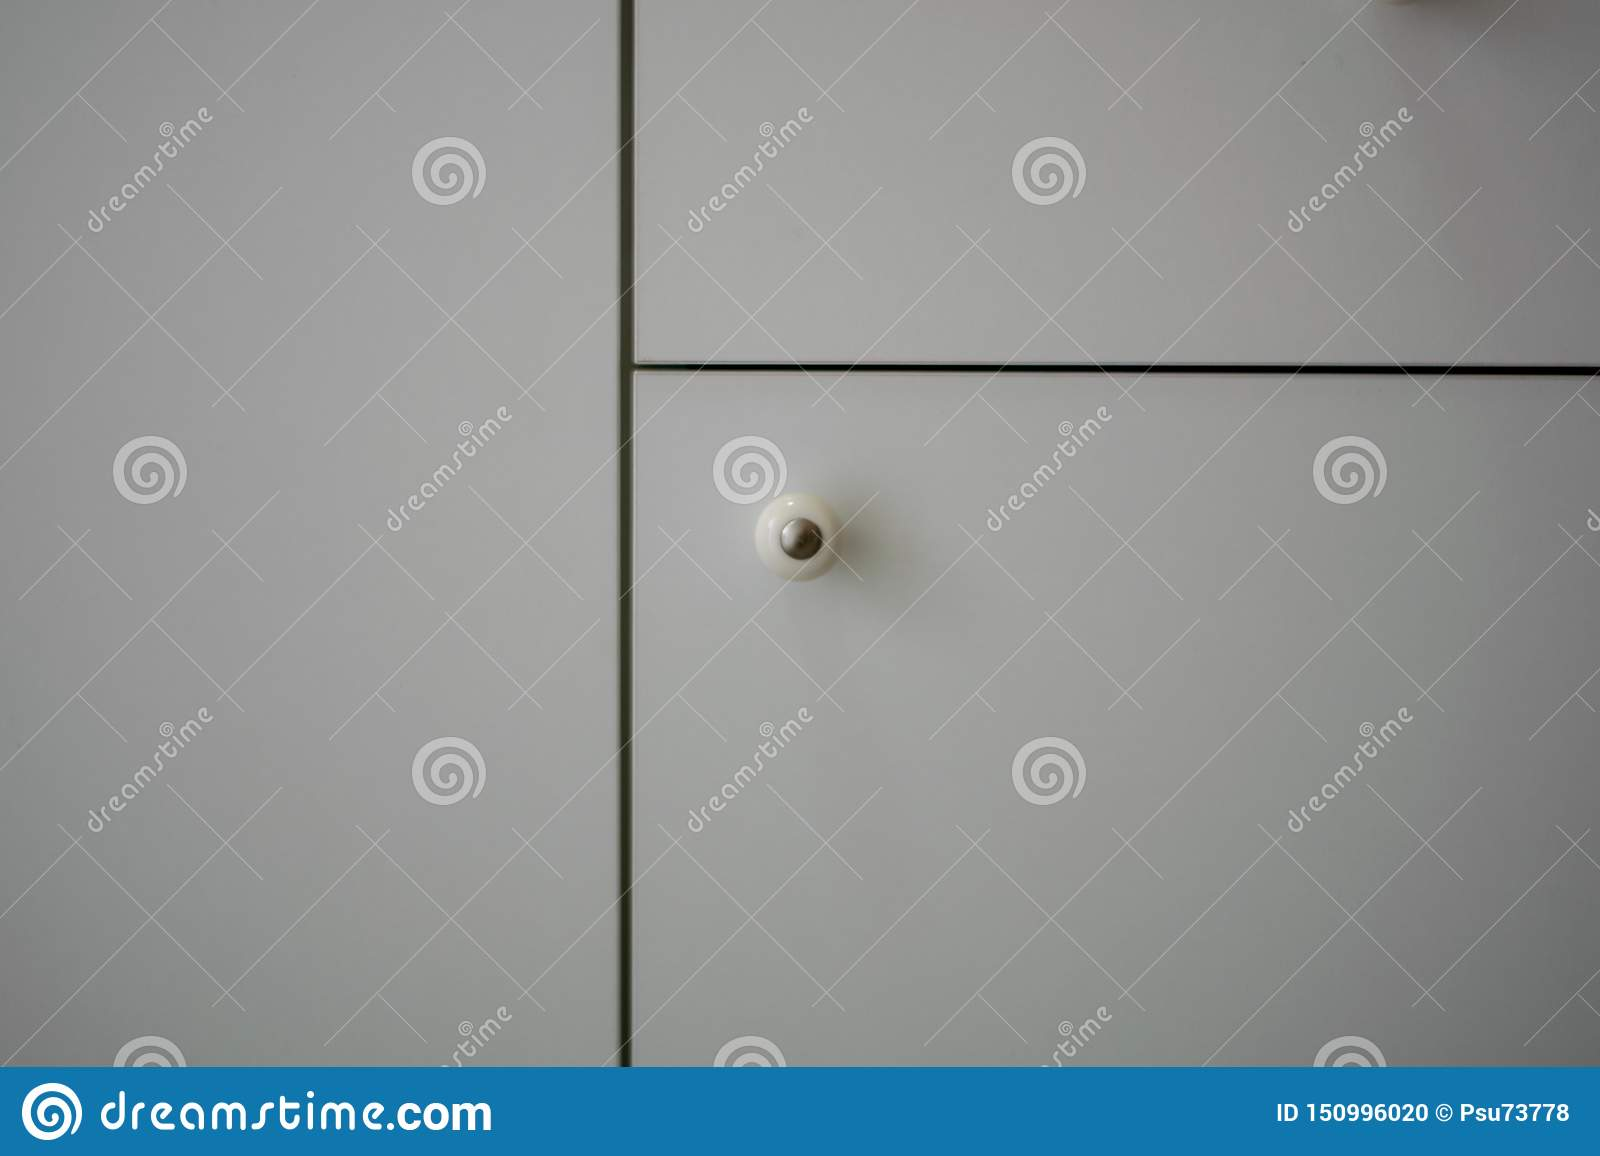 Tongue door, clear, white locker, black line